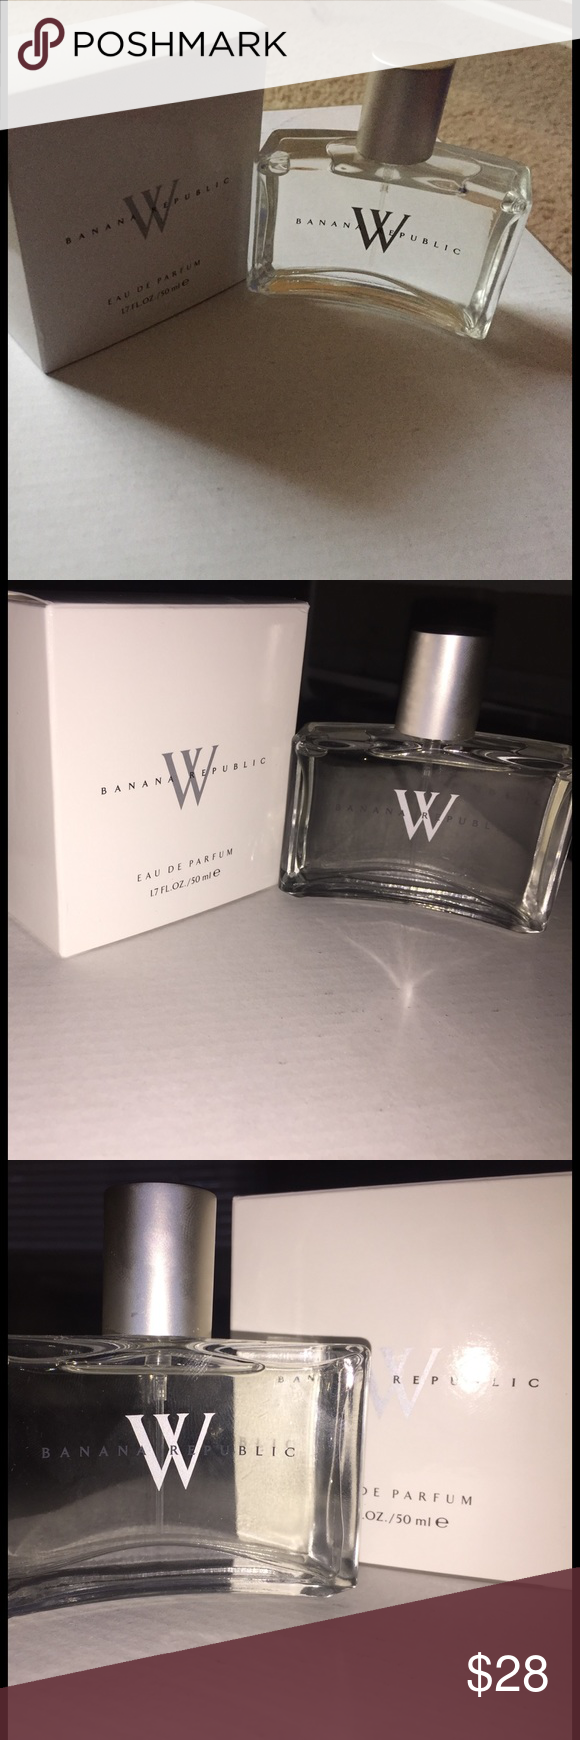 Selling this EAU De Parfum on Poshmark! My username is